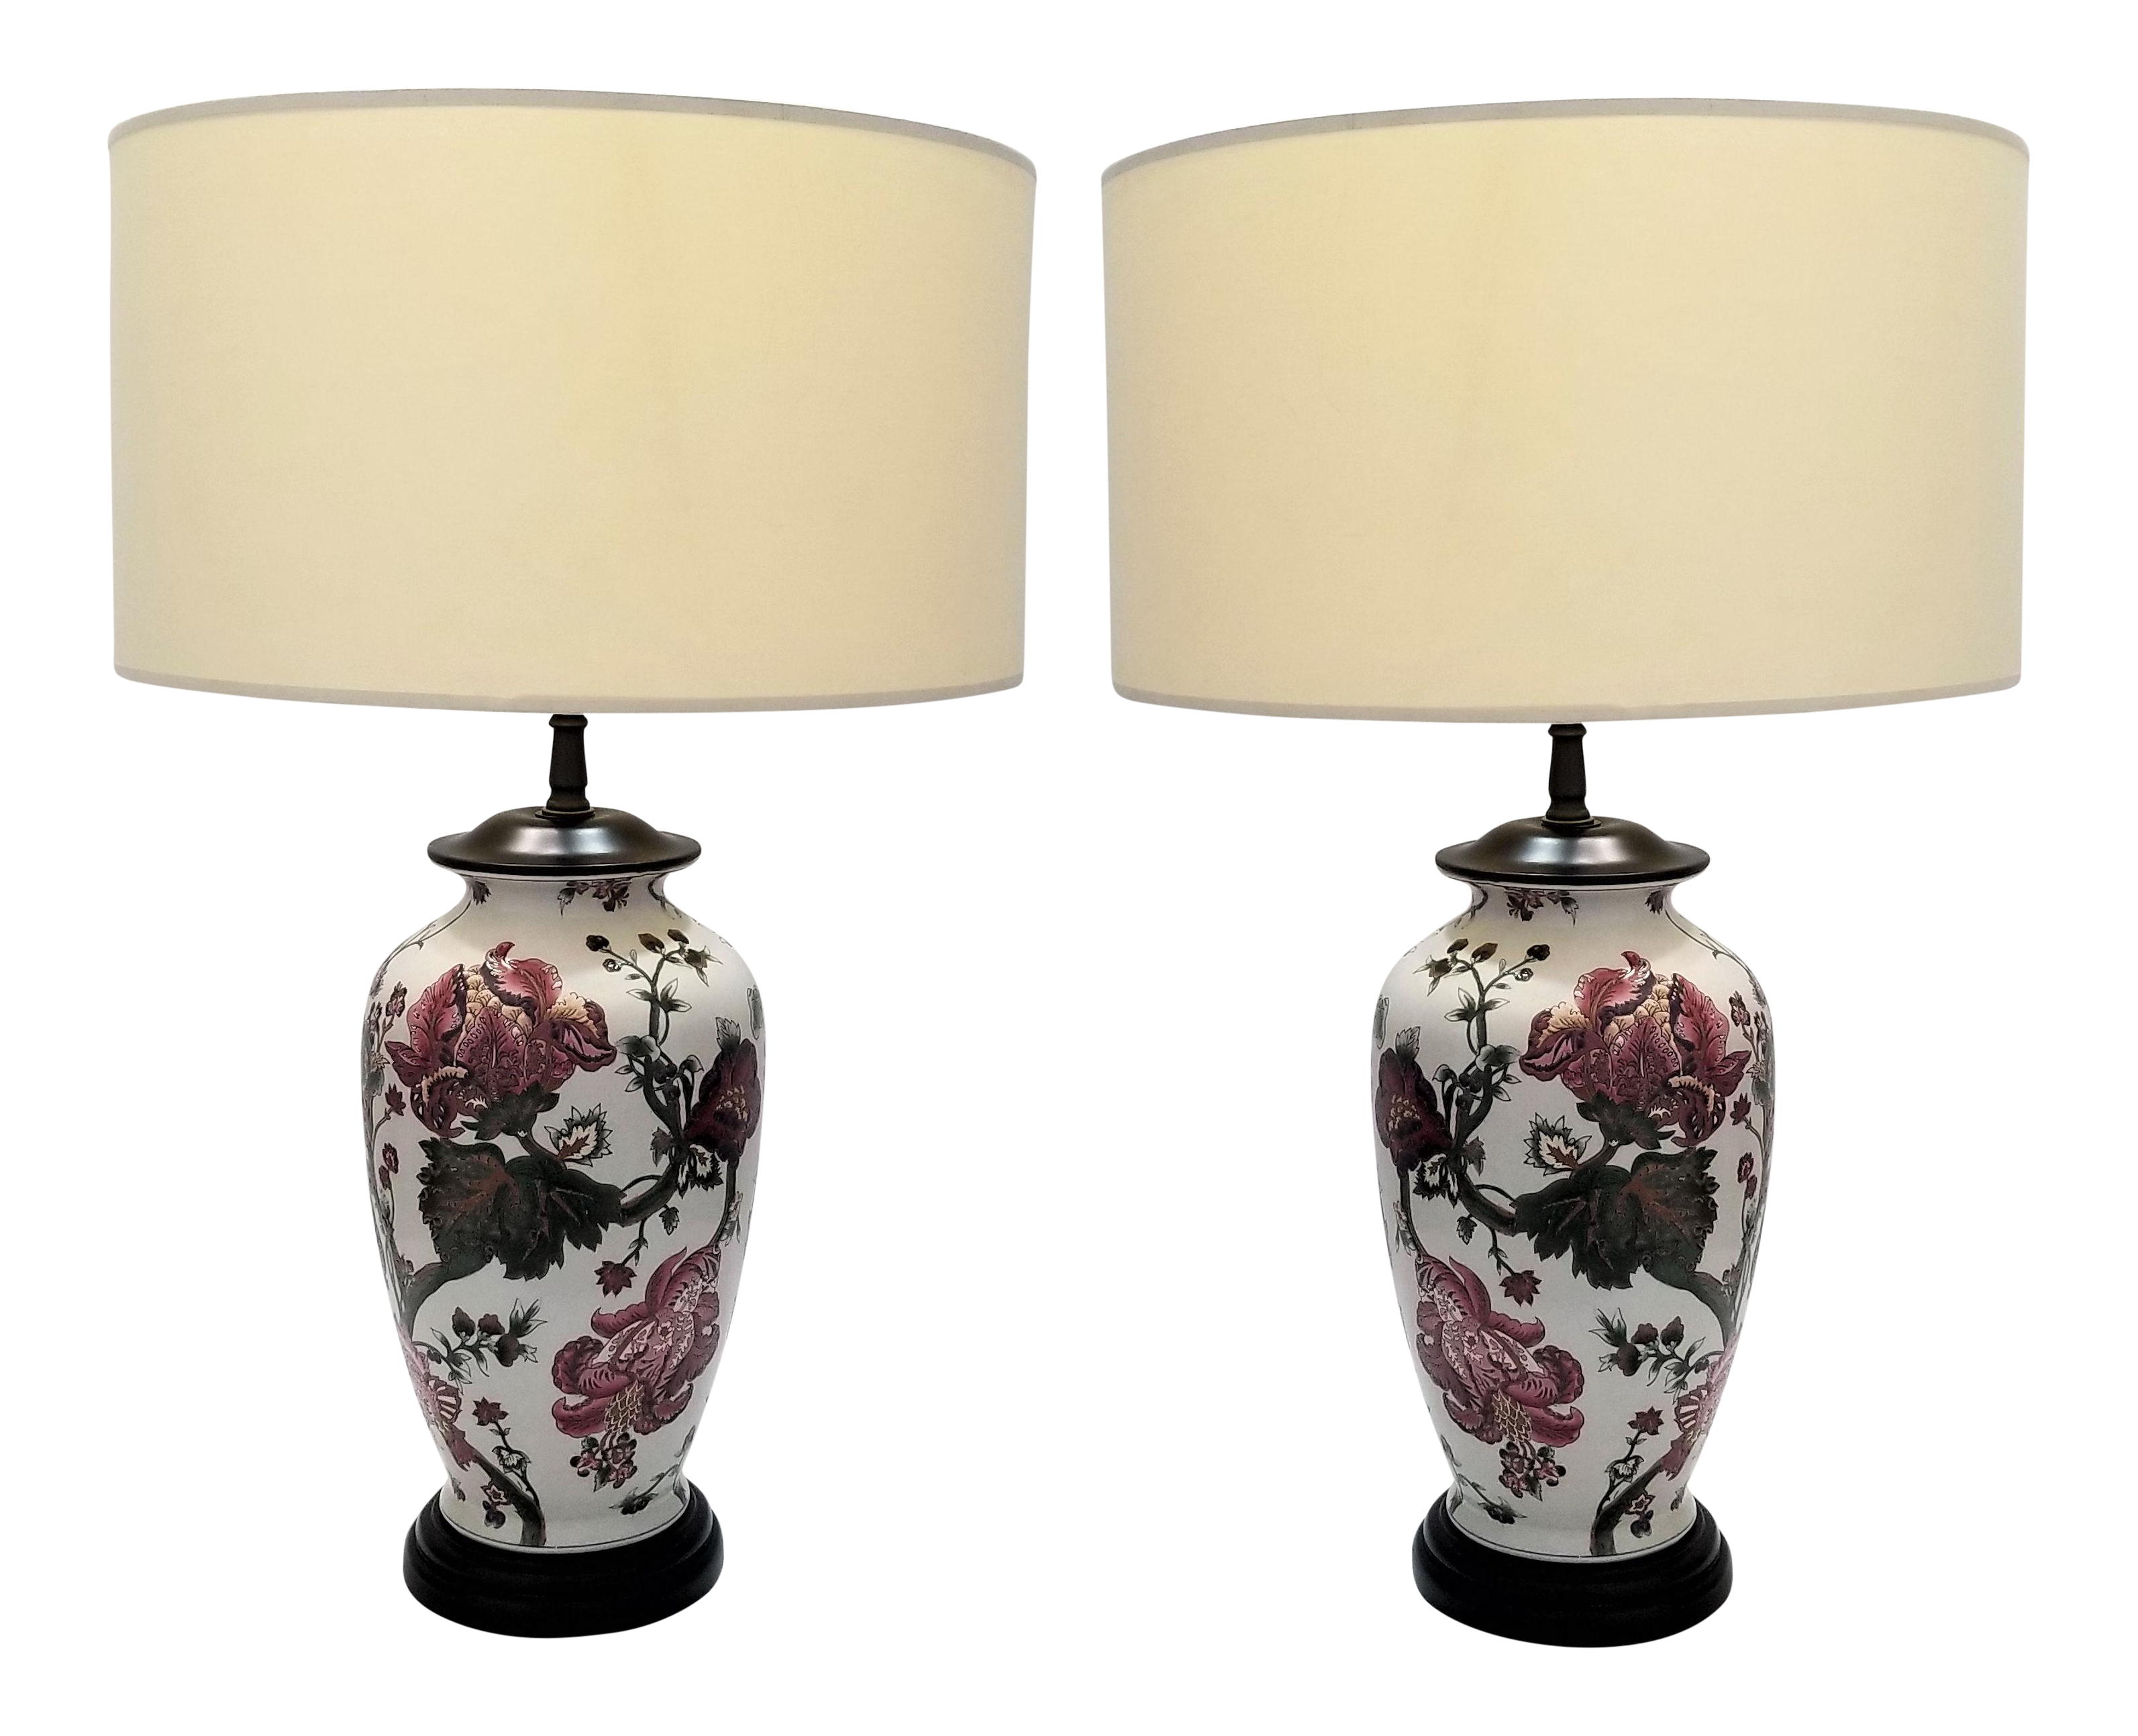 confettistyle lamp lamps porcelain winning table ceramic white antiquenese traditional uk vintage